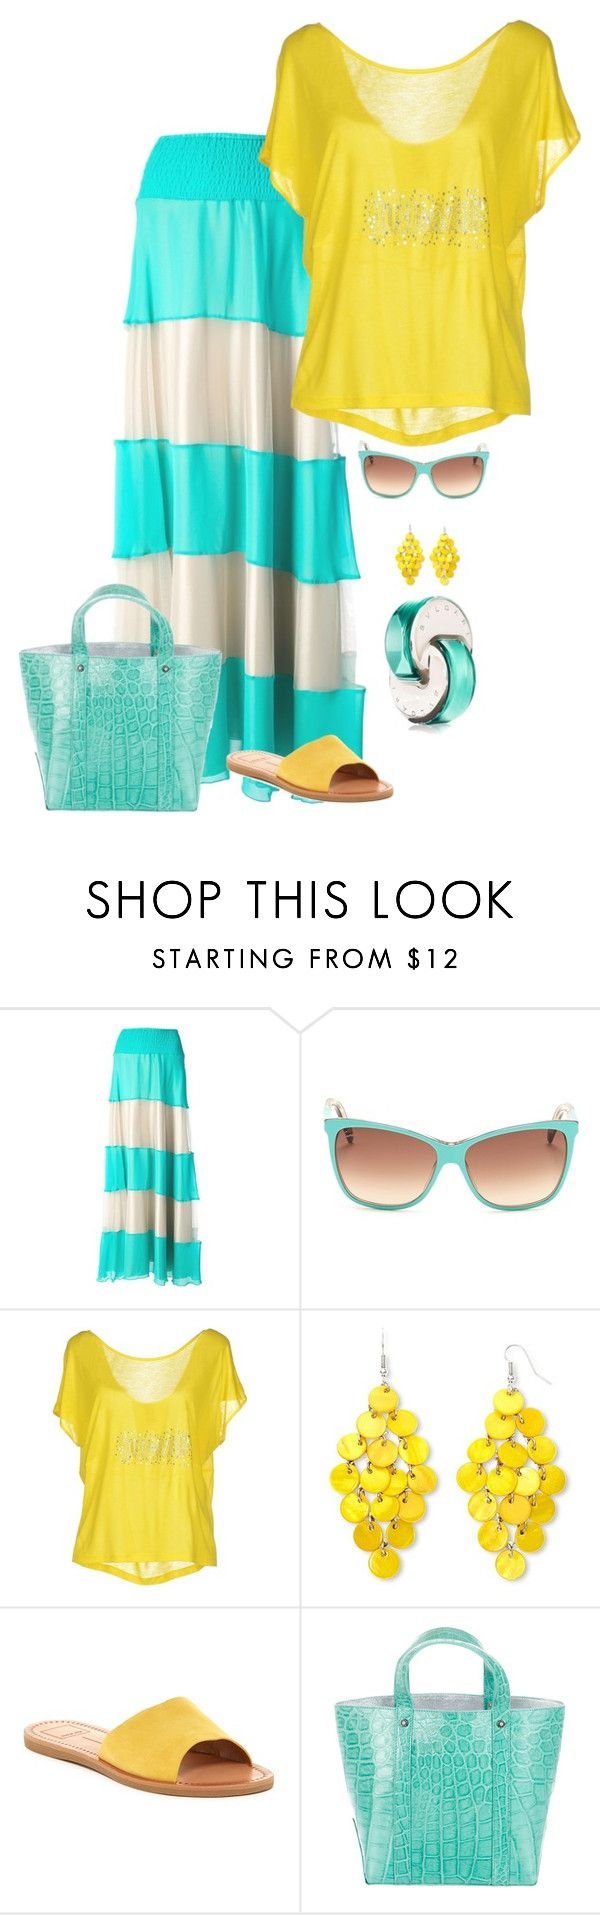 """Summer"" by chateaubeau on Polyvore featuring Le Ragazze Di St. Barth, Gucci, Just Cavalli, Mixit, Dolce Vita, Tiffany & Co. and Dolce&Gabbana"